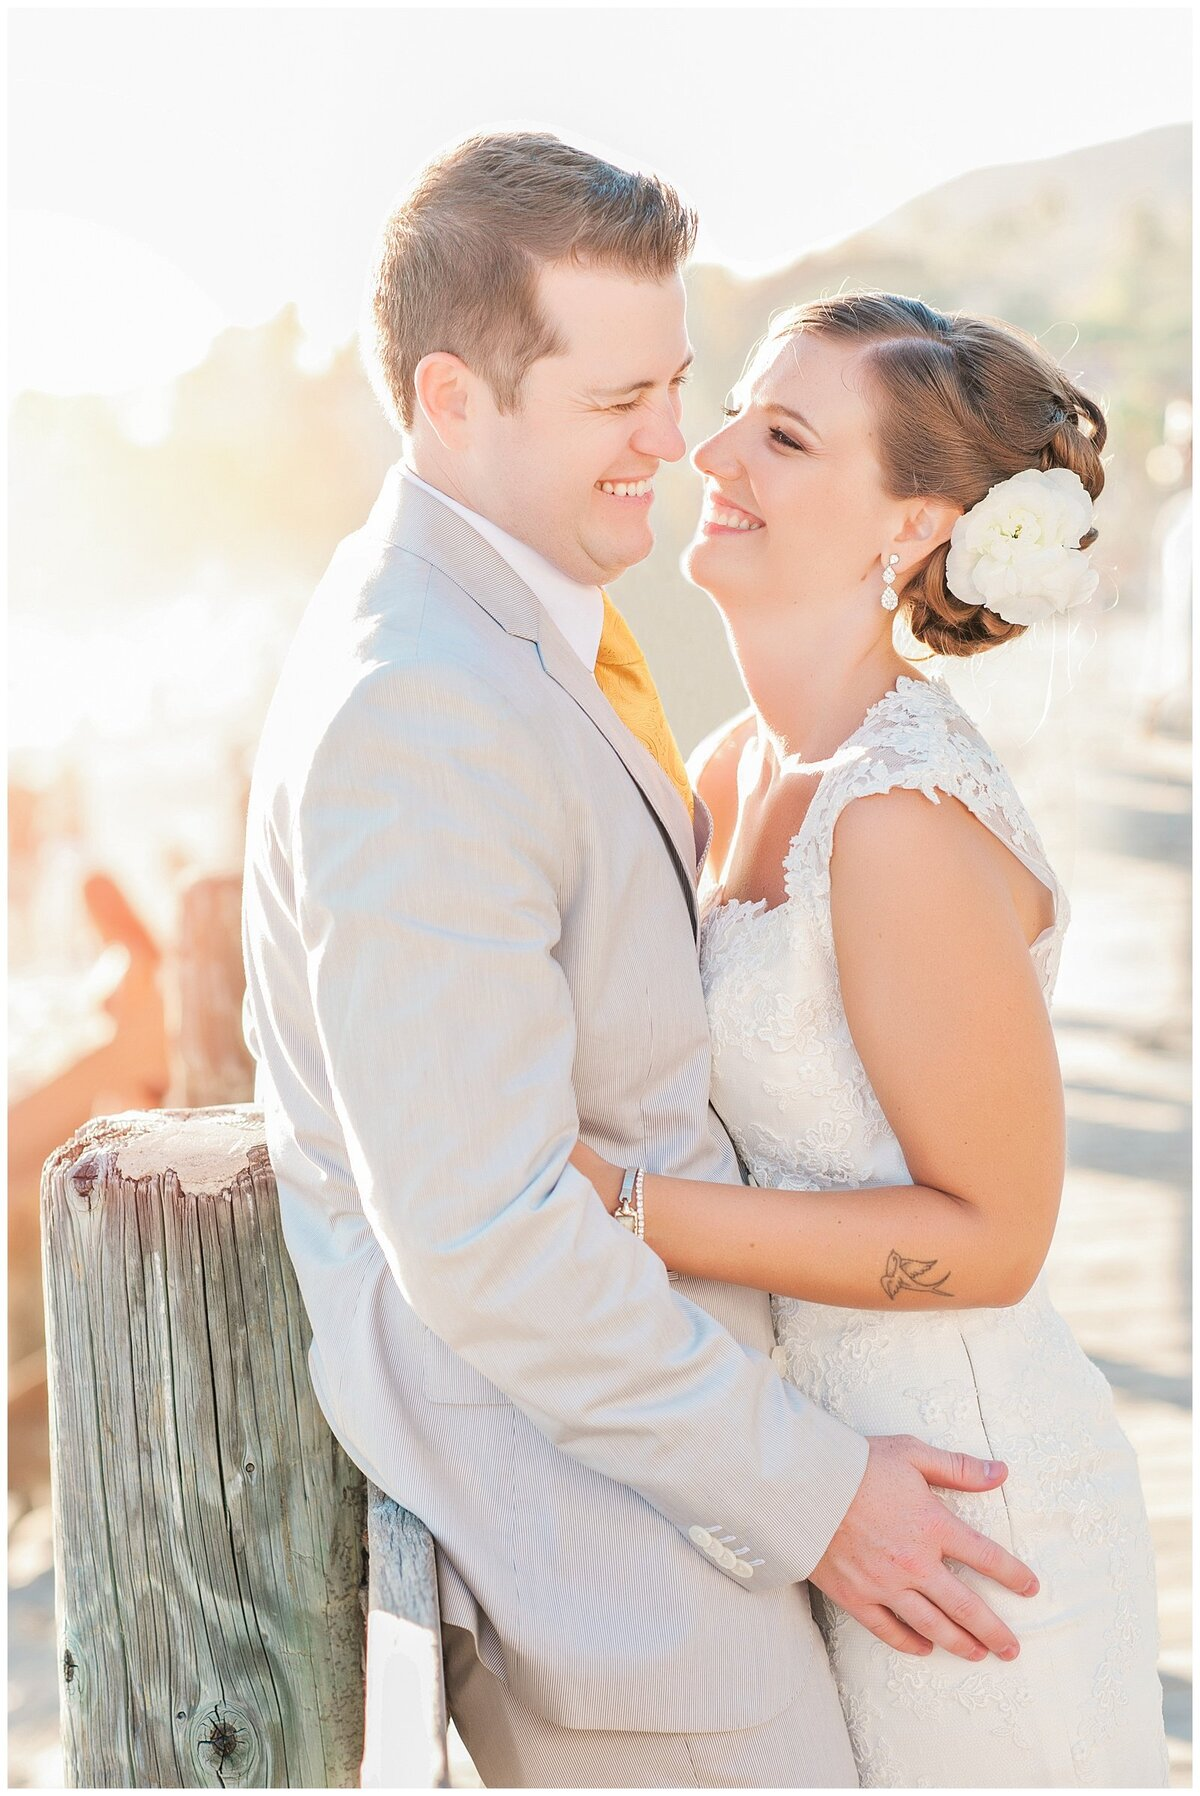 san diego beach wedding romantic light airy mermaid dress photos022